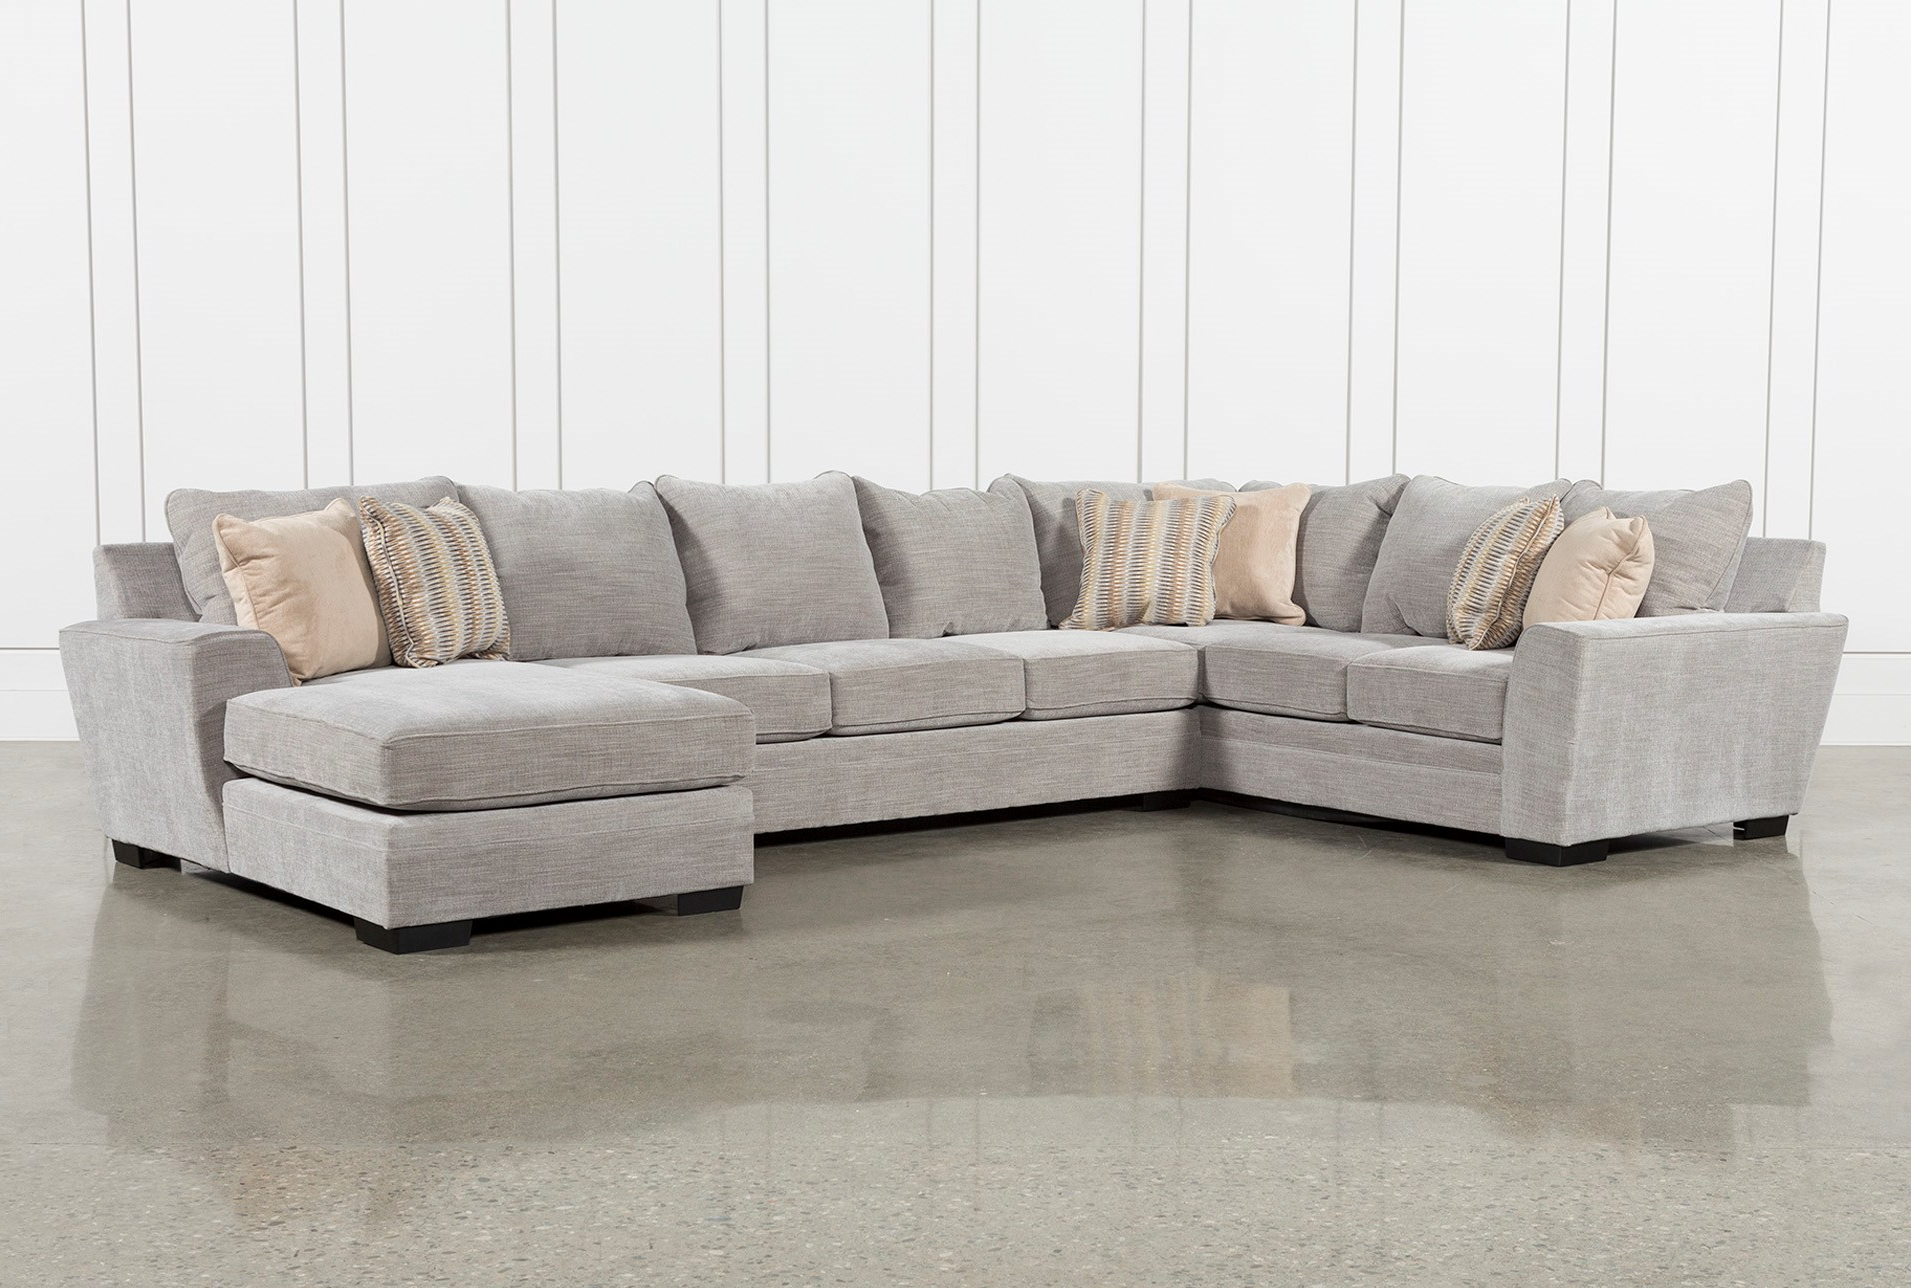 Most Up To Date Malbry Point 3 Piece Sectionals With Laf Chaise For Delano Smoke 3 Piece Sectional Living Spaces – Locsbyhelenelorasa (View 15 of 20)